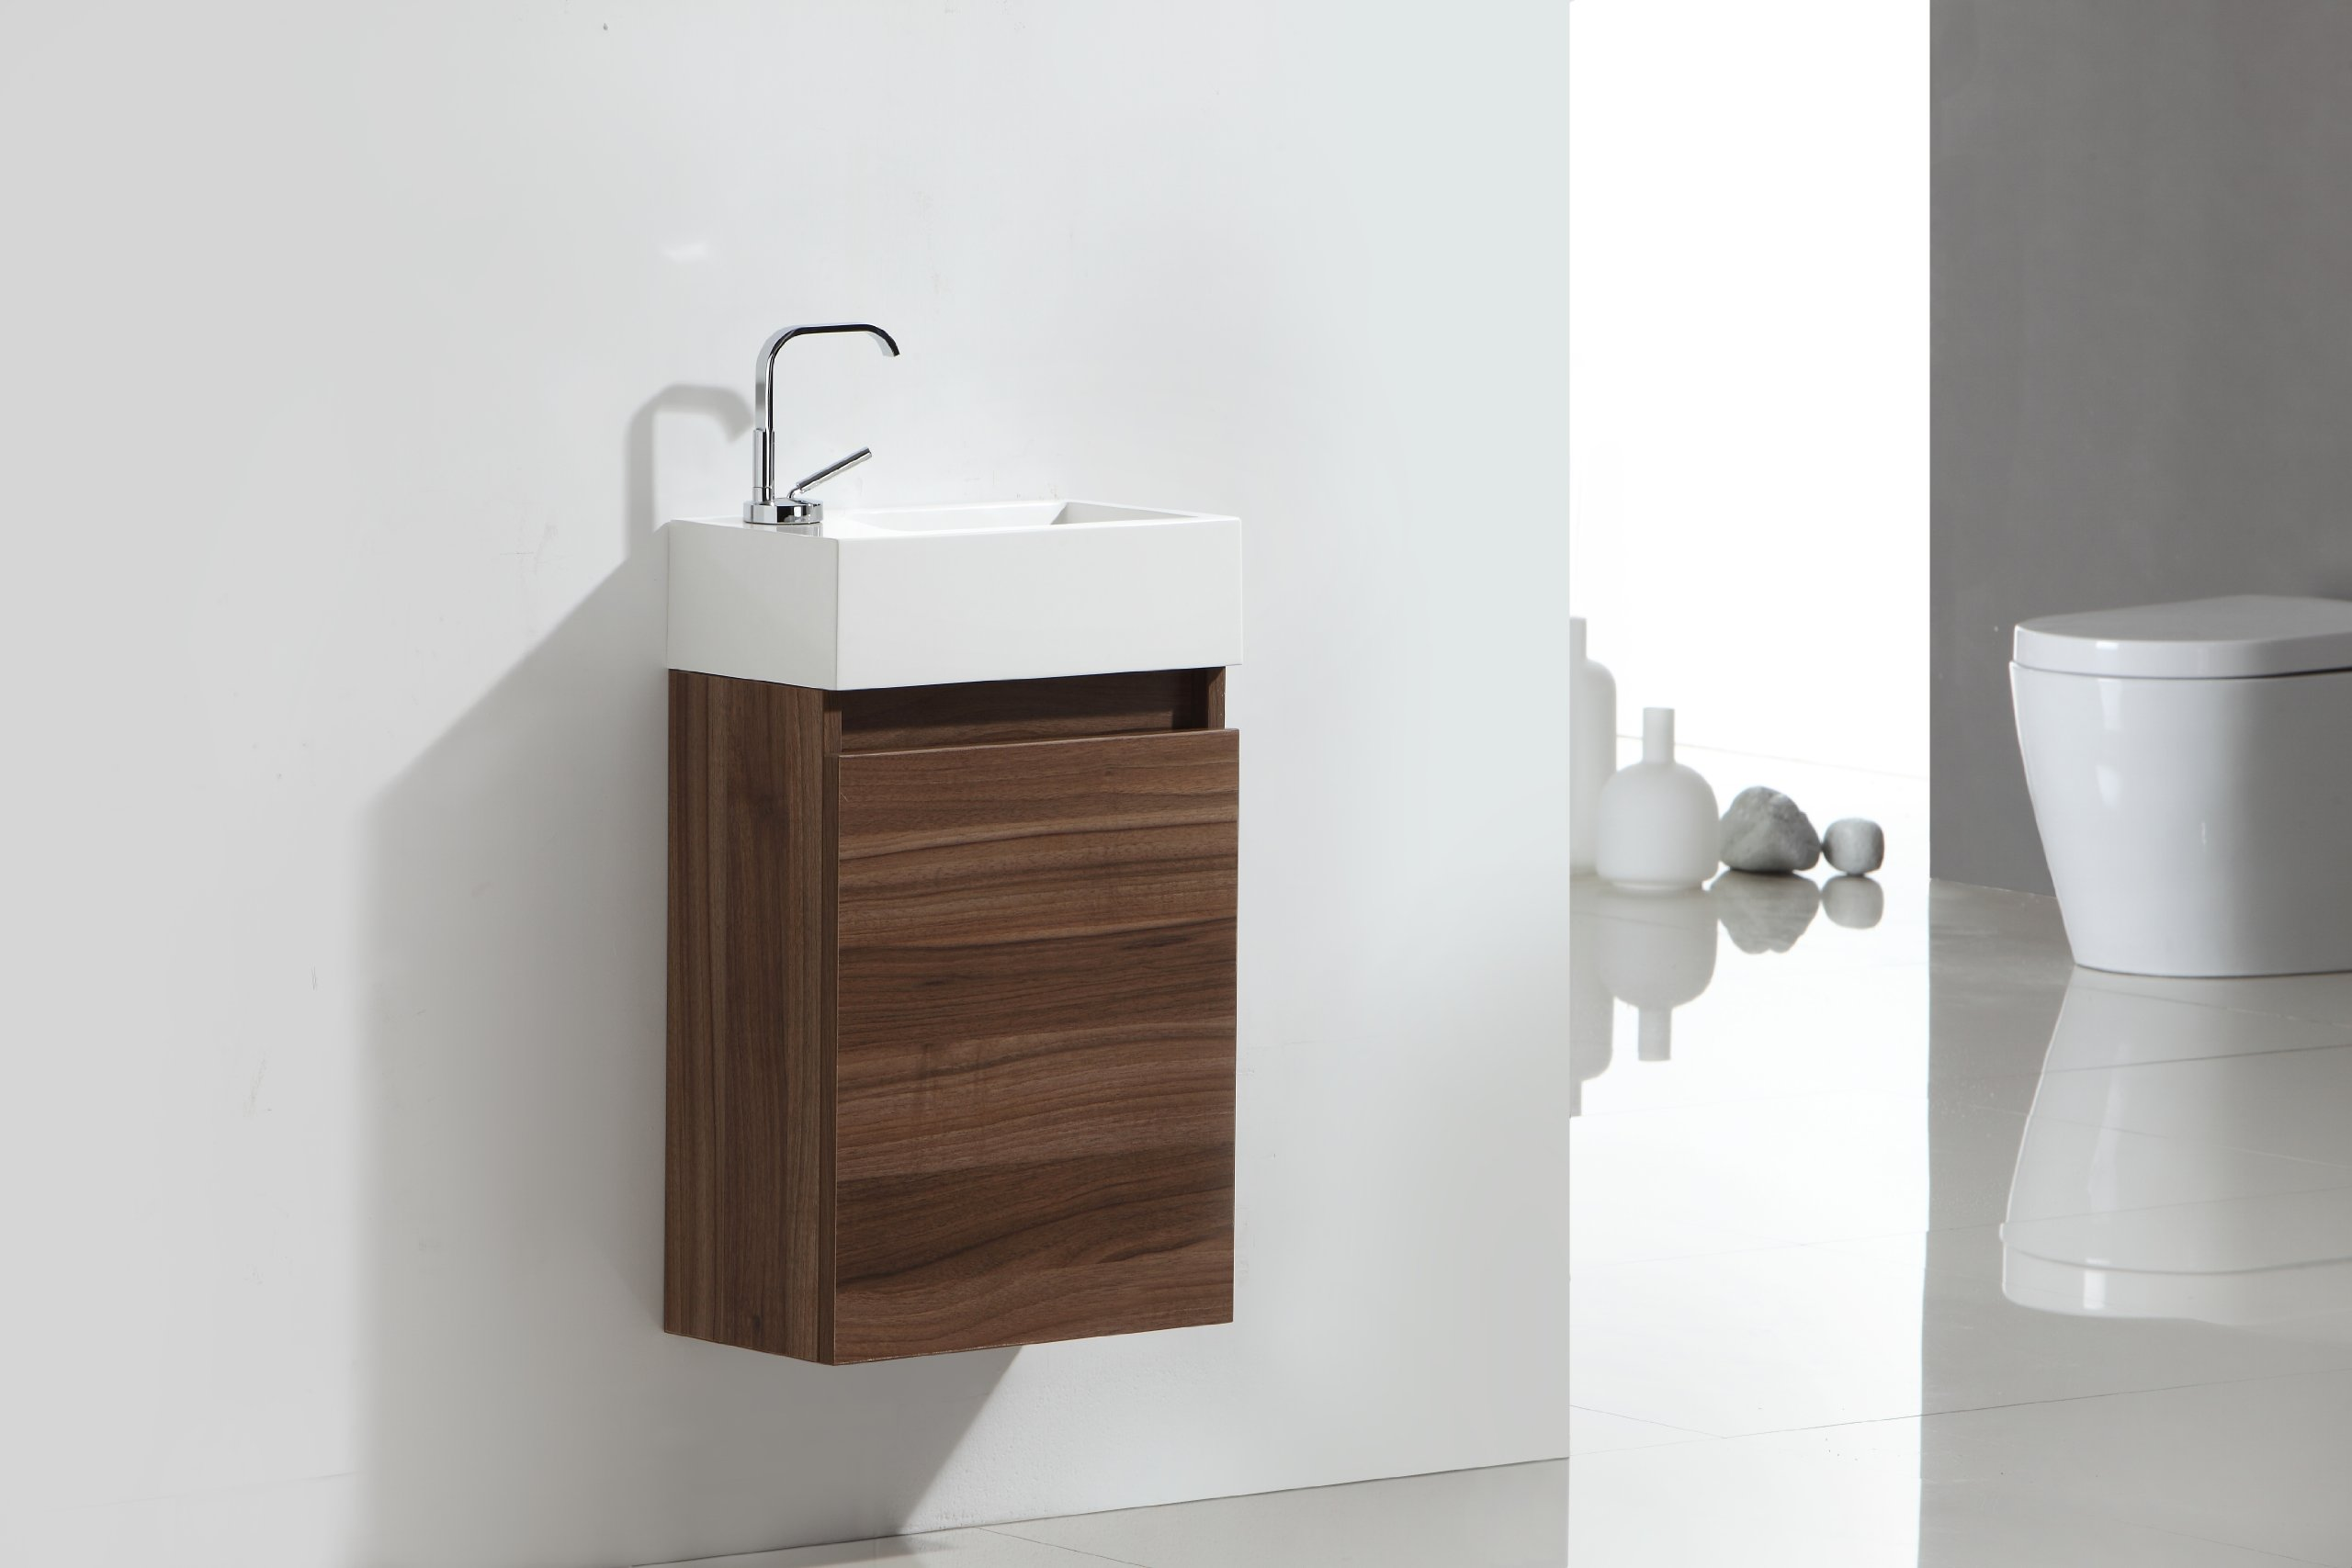 Luxo Marbre RELAX V40 W Relax Vanity with Synthetic Marble Sink, Walnut - Includes: single-door vanity with white synthetic marble sink, plug and single faucet hole Available in choice of two colors: Walnut or Alamo Oak Rectangular basin 15.75-Inch x 4.5-Inch x 8.75-Inch, 1.5-Inch drain opening - bathroom-vanities, bathroom-fixtures-hardware, bathroom - 710p F2hN7L -